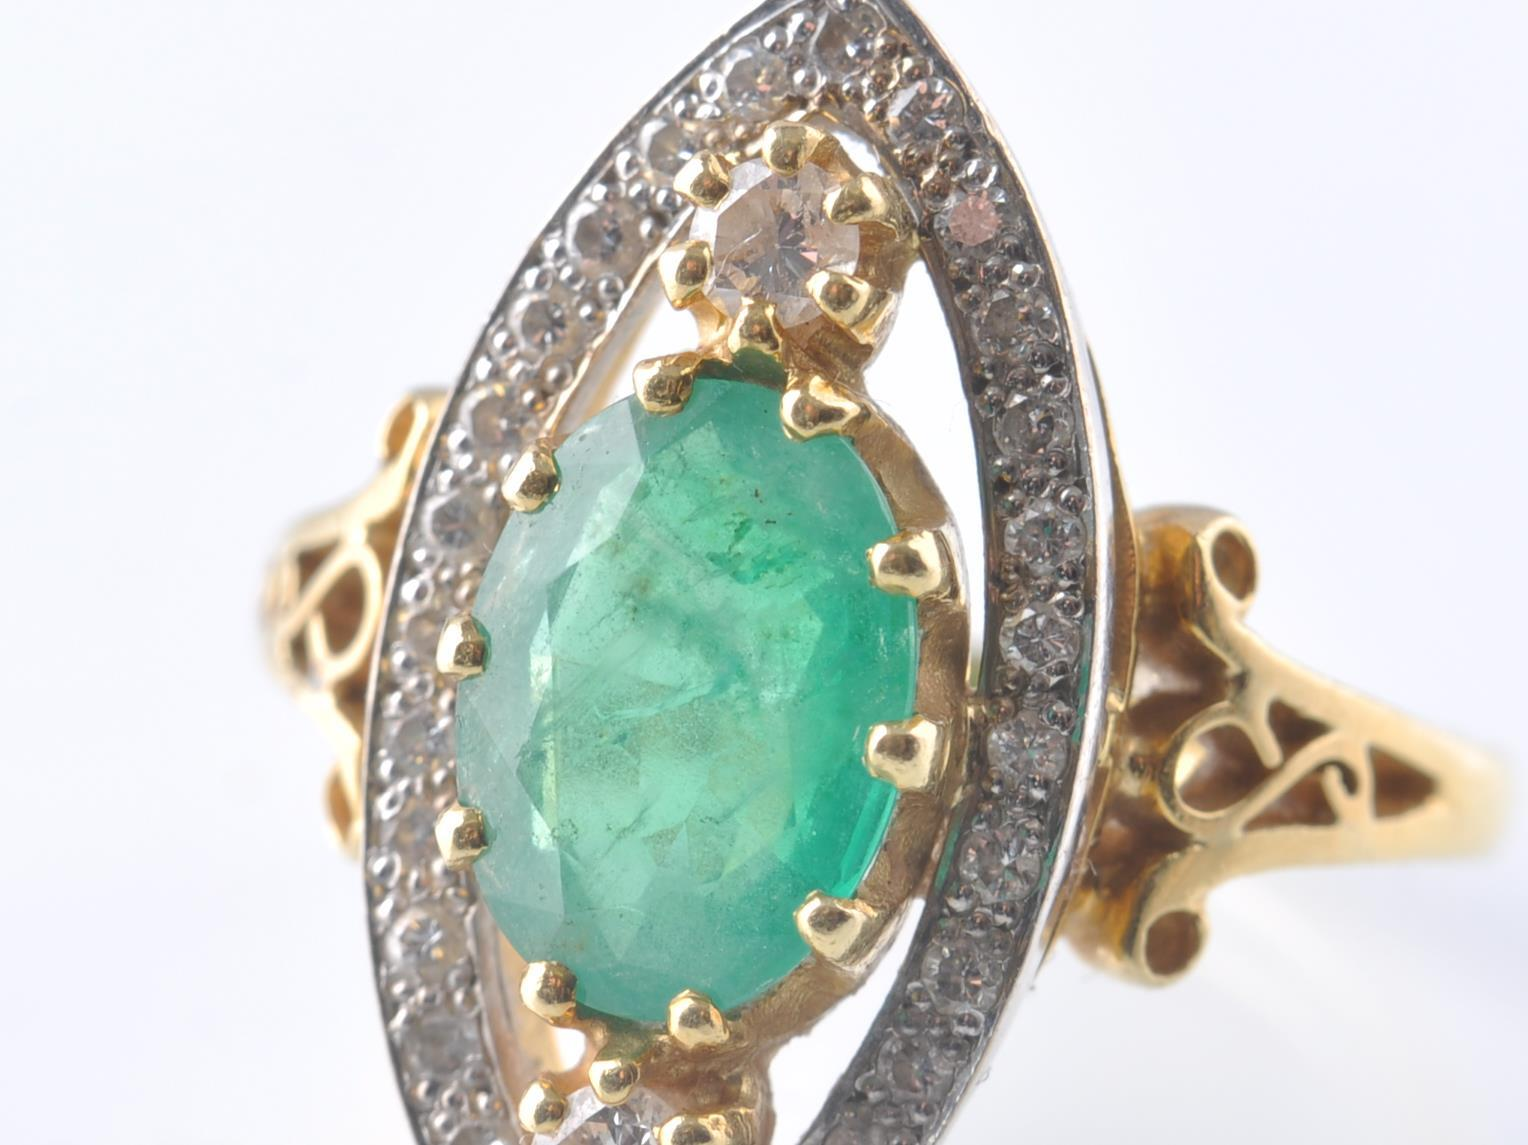 A HALLMARKED 18CT GOD EMERALD AND DIAMOND RING - Image 4 of 11